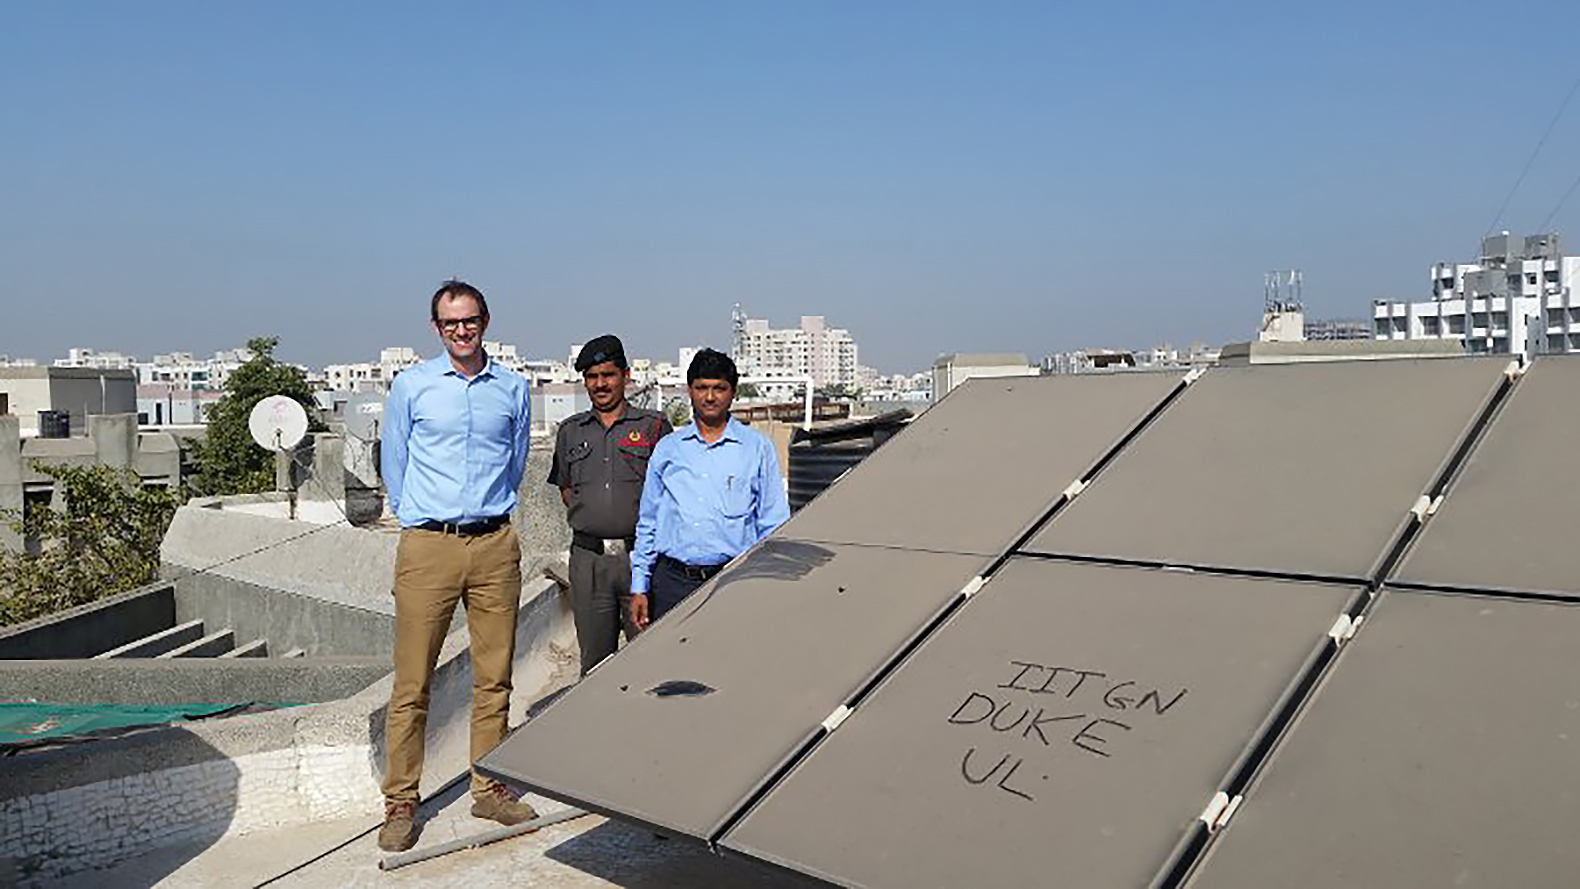 Pollution cuts solar energy production by up to 35%